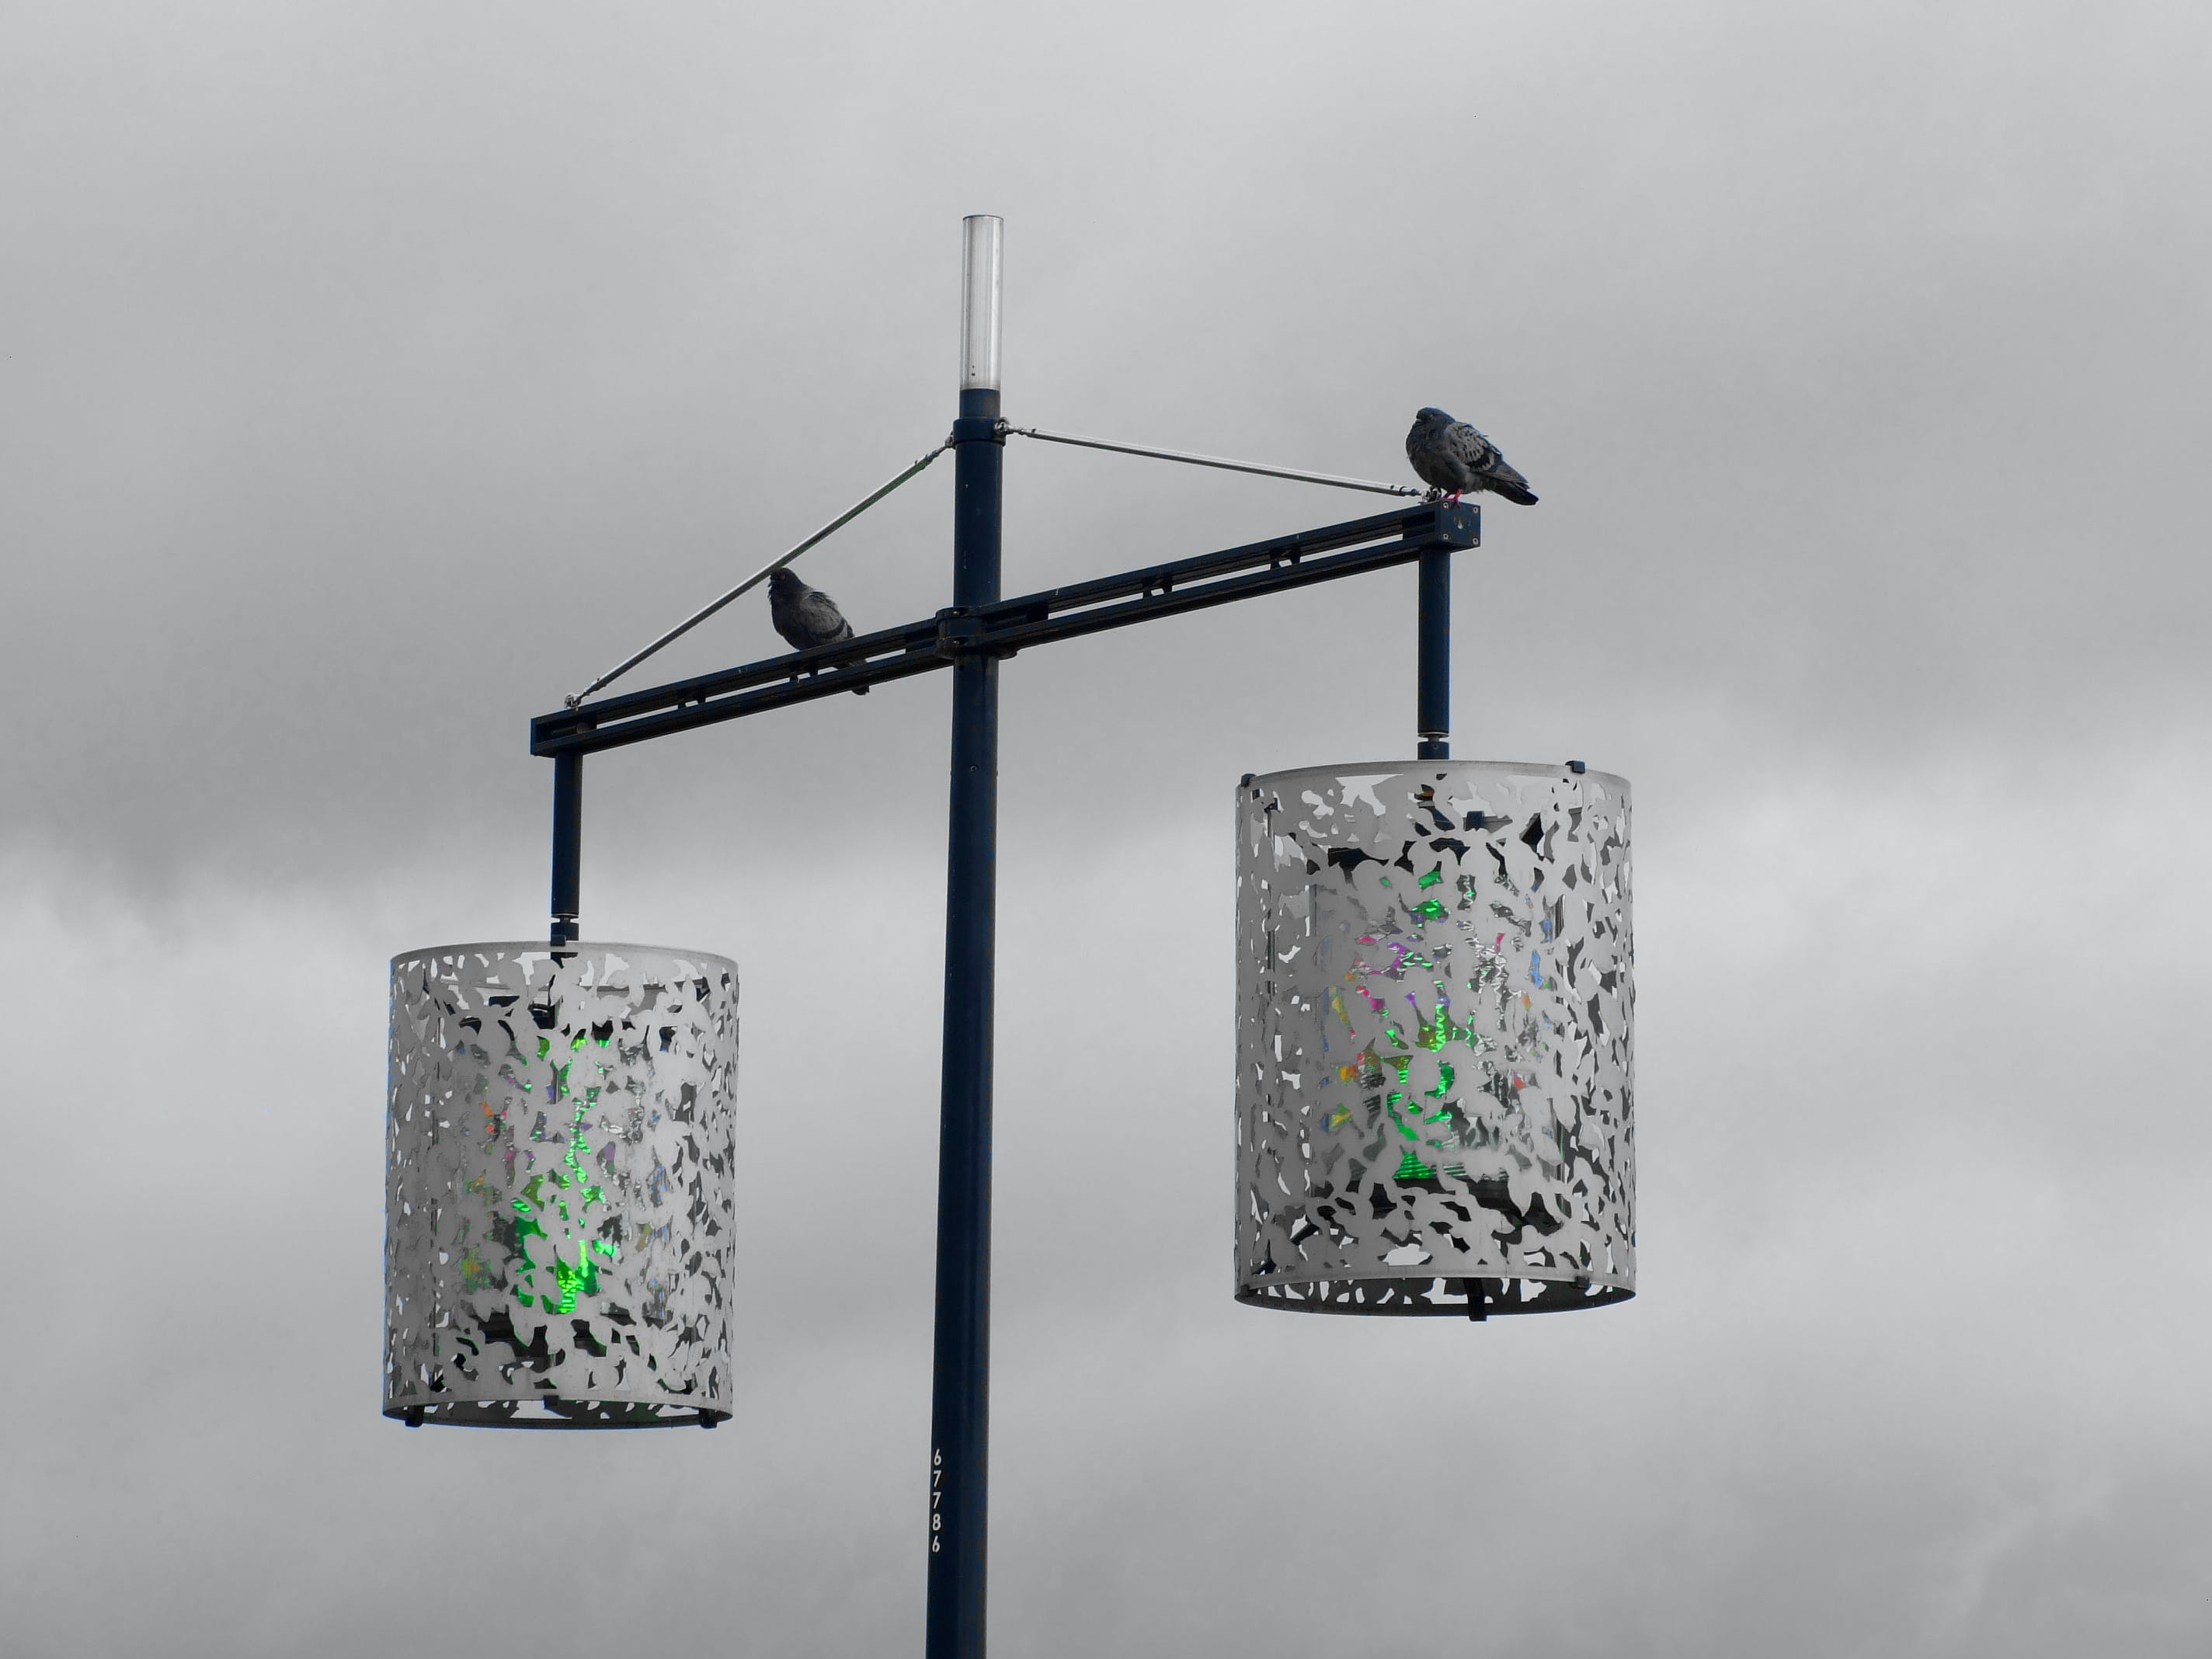 2 Street Light With 2 Bird Grayscale Photography